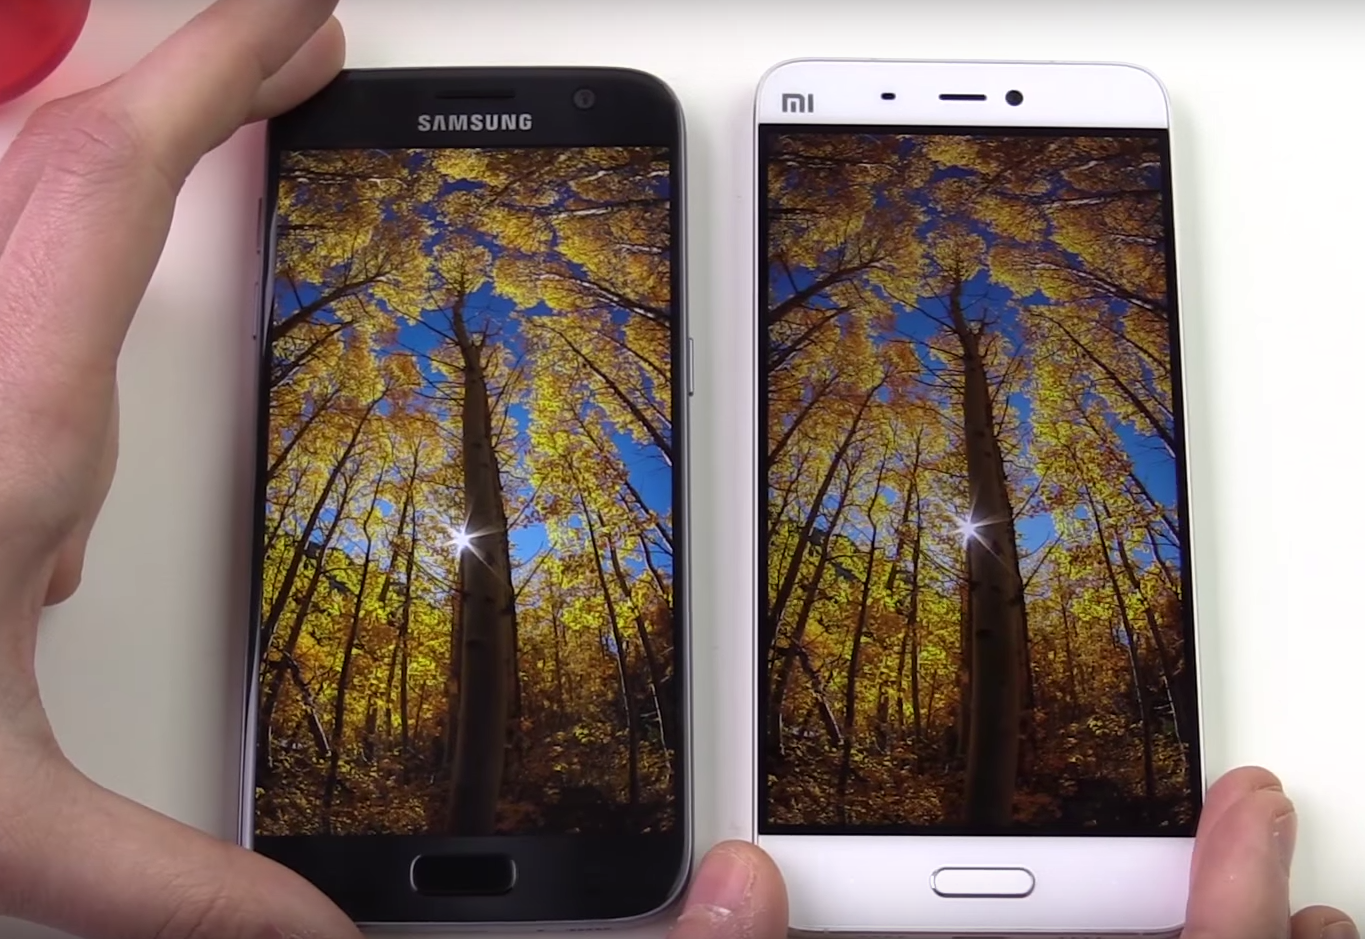 Xiaomi Mi 5 vs. Samsung Galaxy S7 devices lying on the white table, showing the same image with trees on both displays.